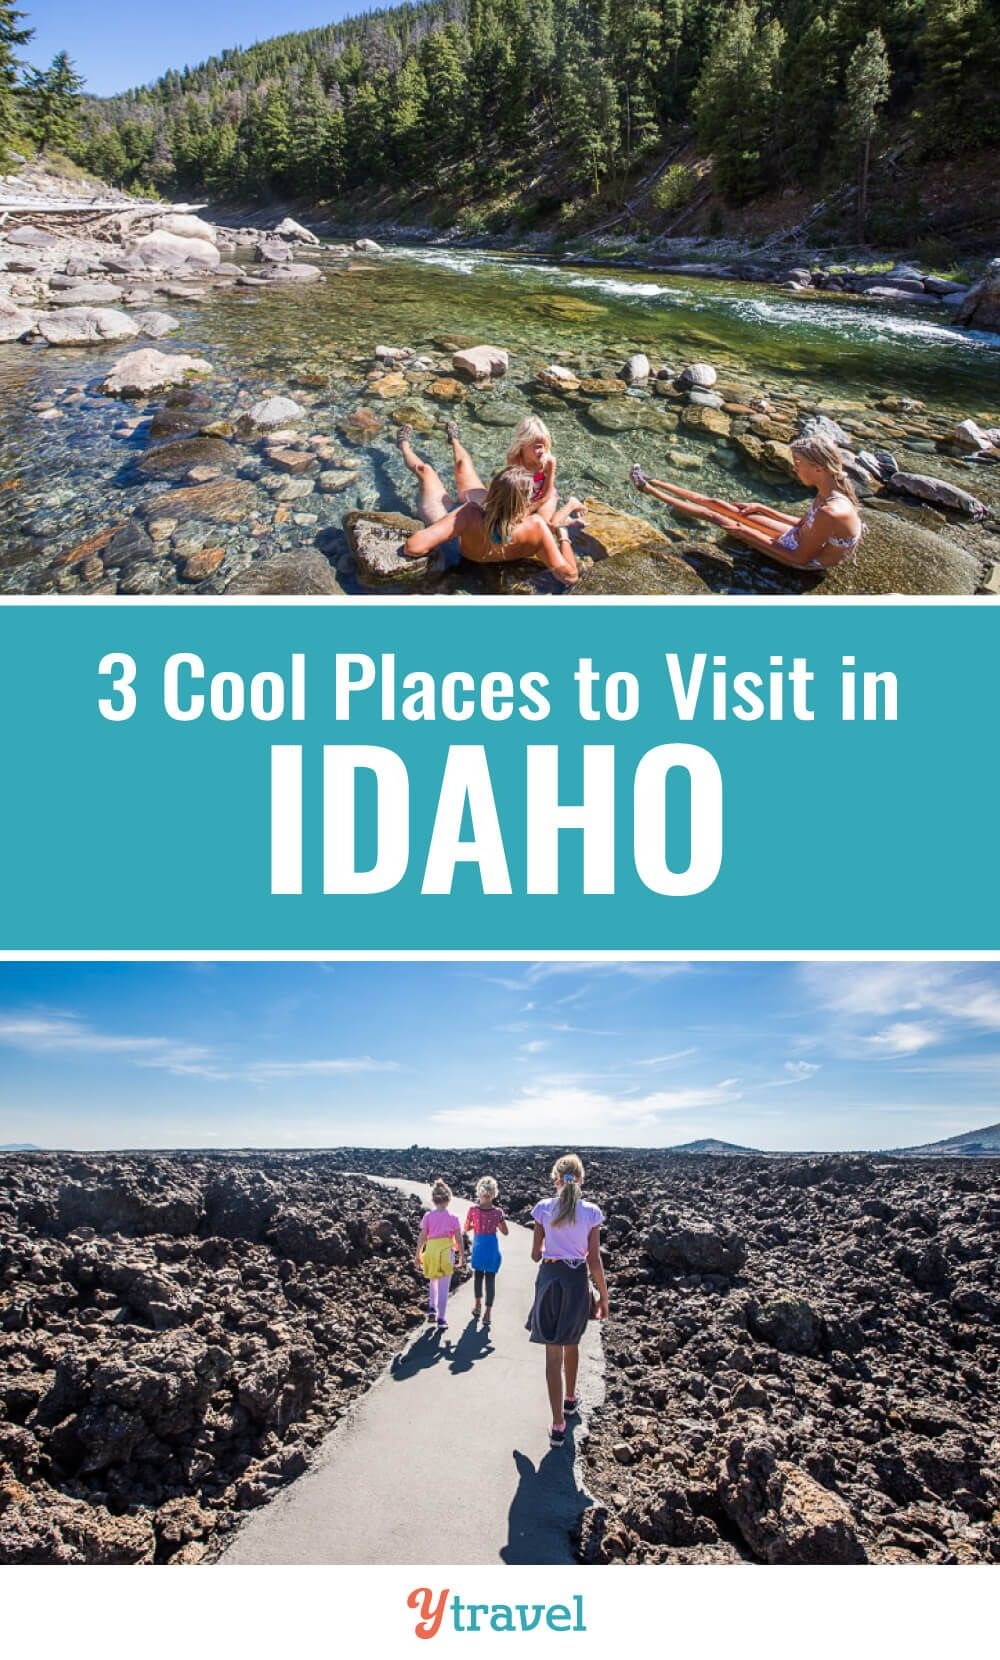 3 Cool Places to Visit in IDAHO